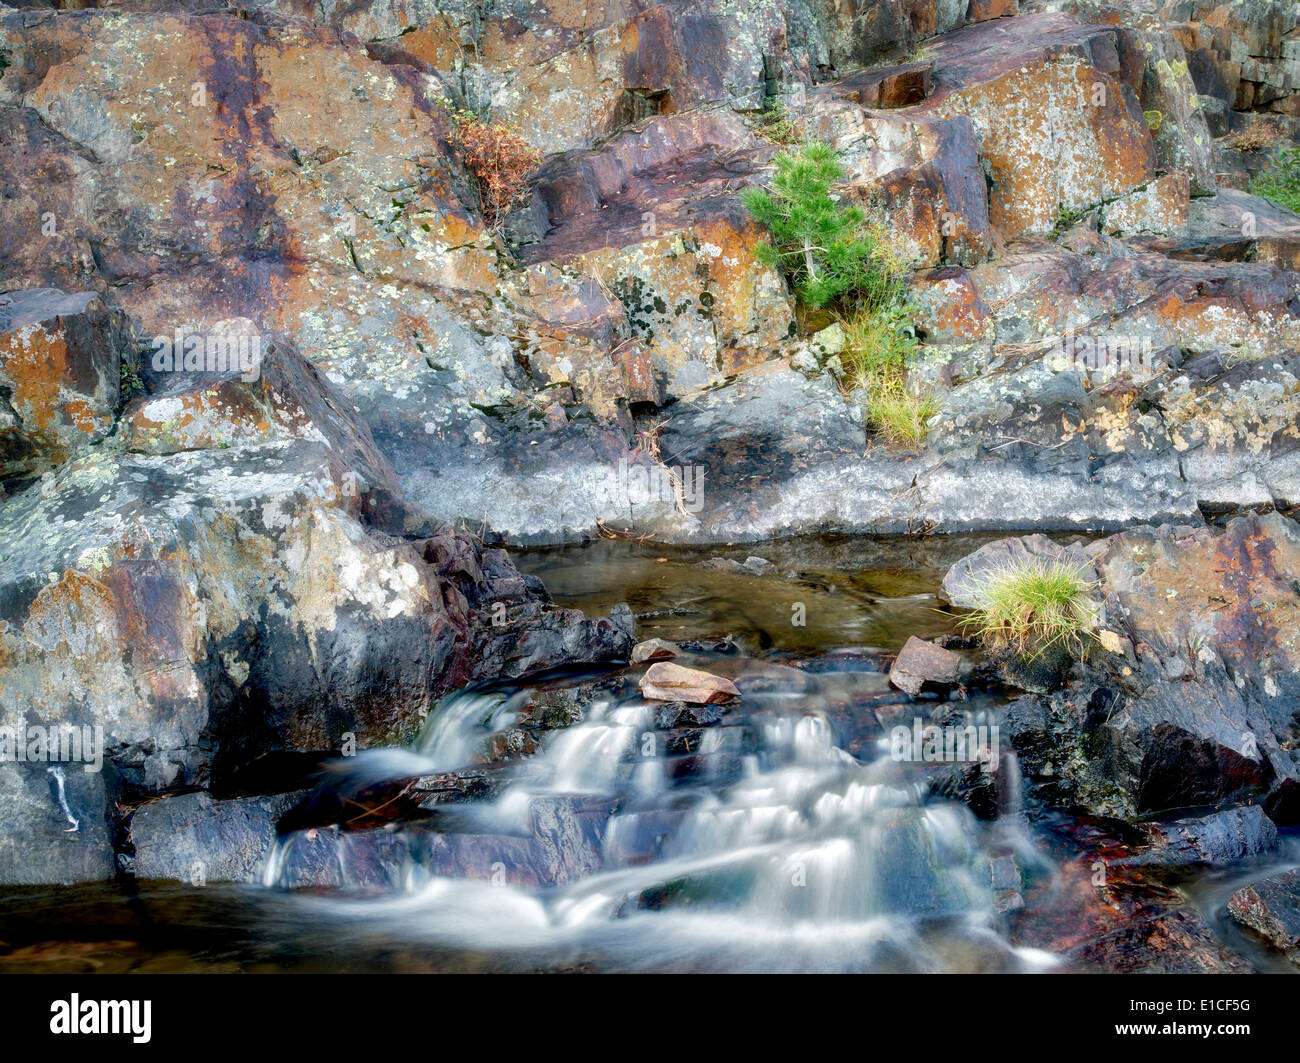 Small waterfal with lichen covered rocks on Glen Alpine Creek near Fallen Leaf Lake. California - Stock Image